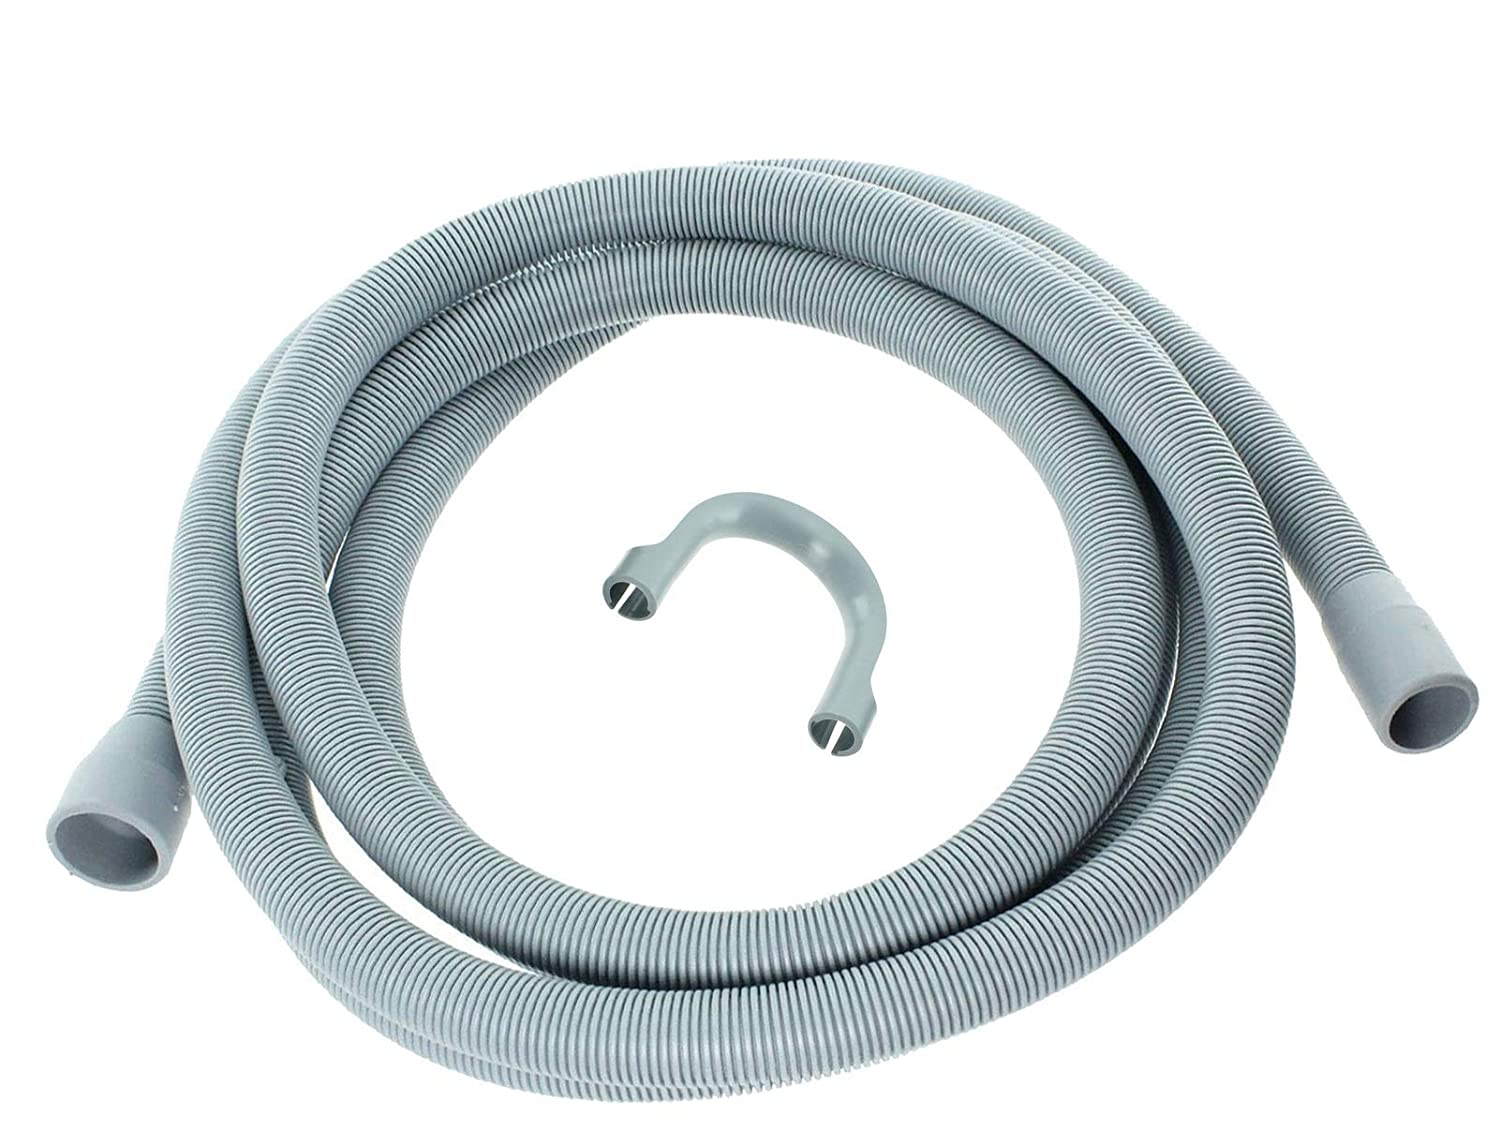 Extra Long 3.5m Length Universal Drain Hose For Washing Machine, Dishwasher & Other Applications, 2 Outlets 22mm & 29mm Bore - Please Check Pump Outlet Size. [Energy Class A+++] Zinc Products